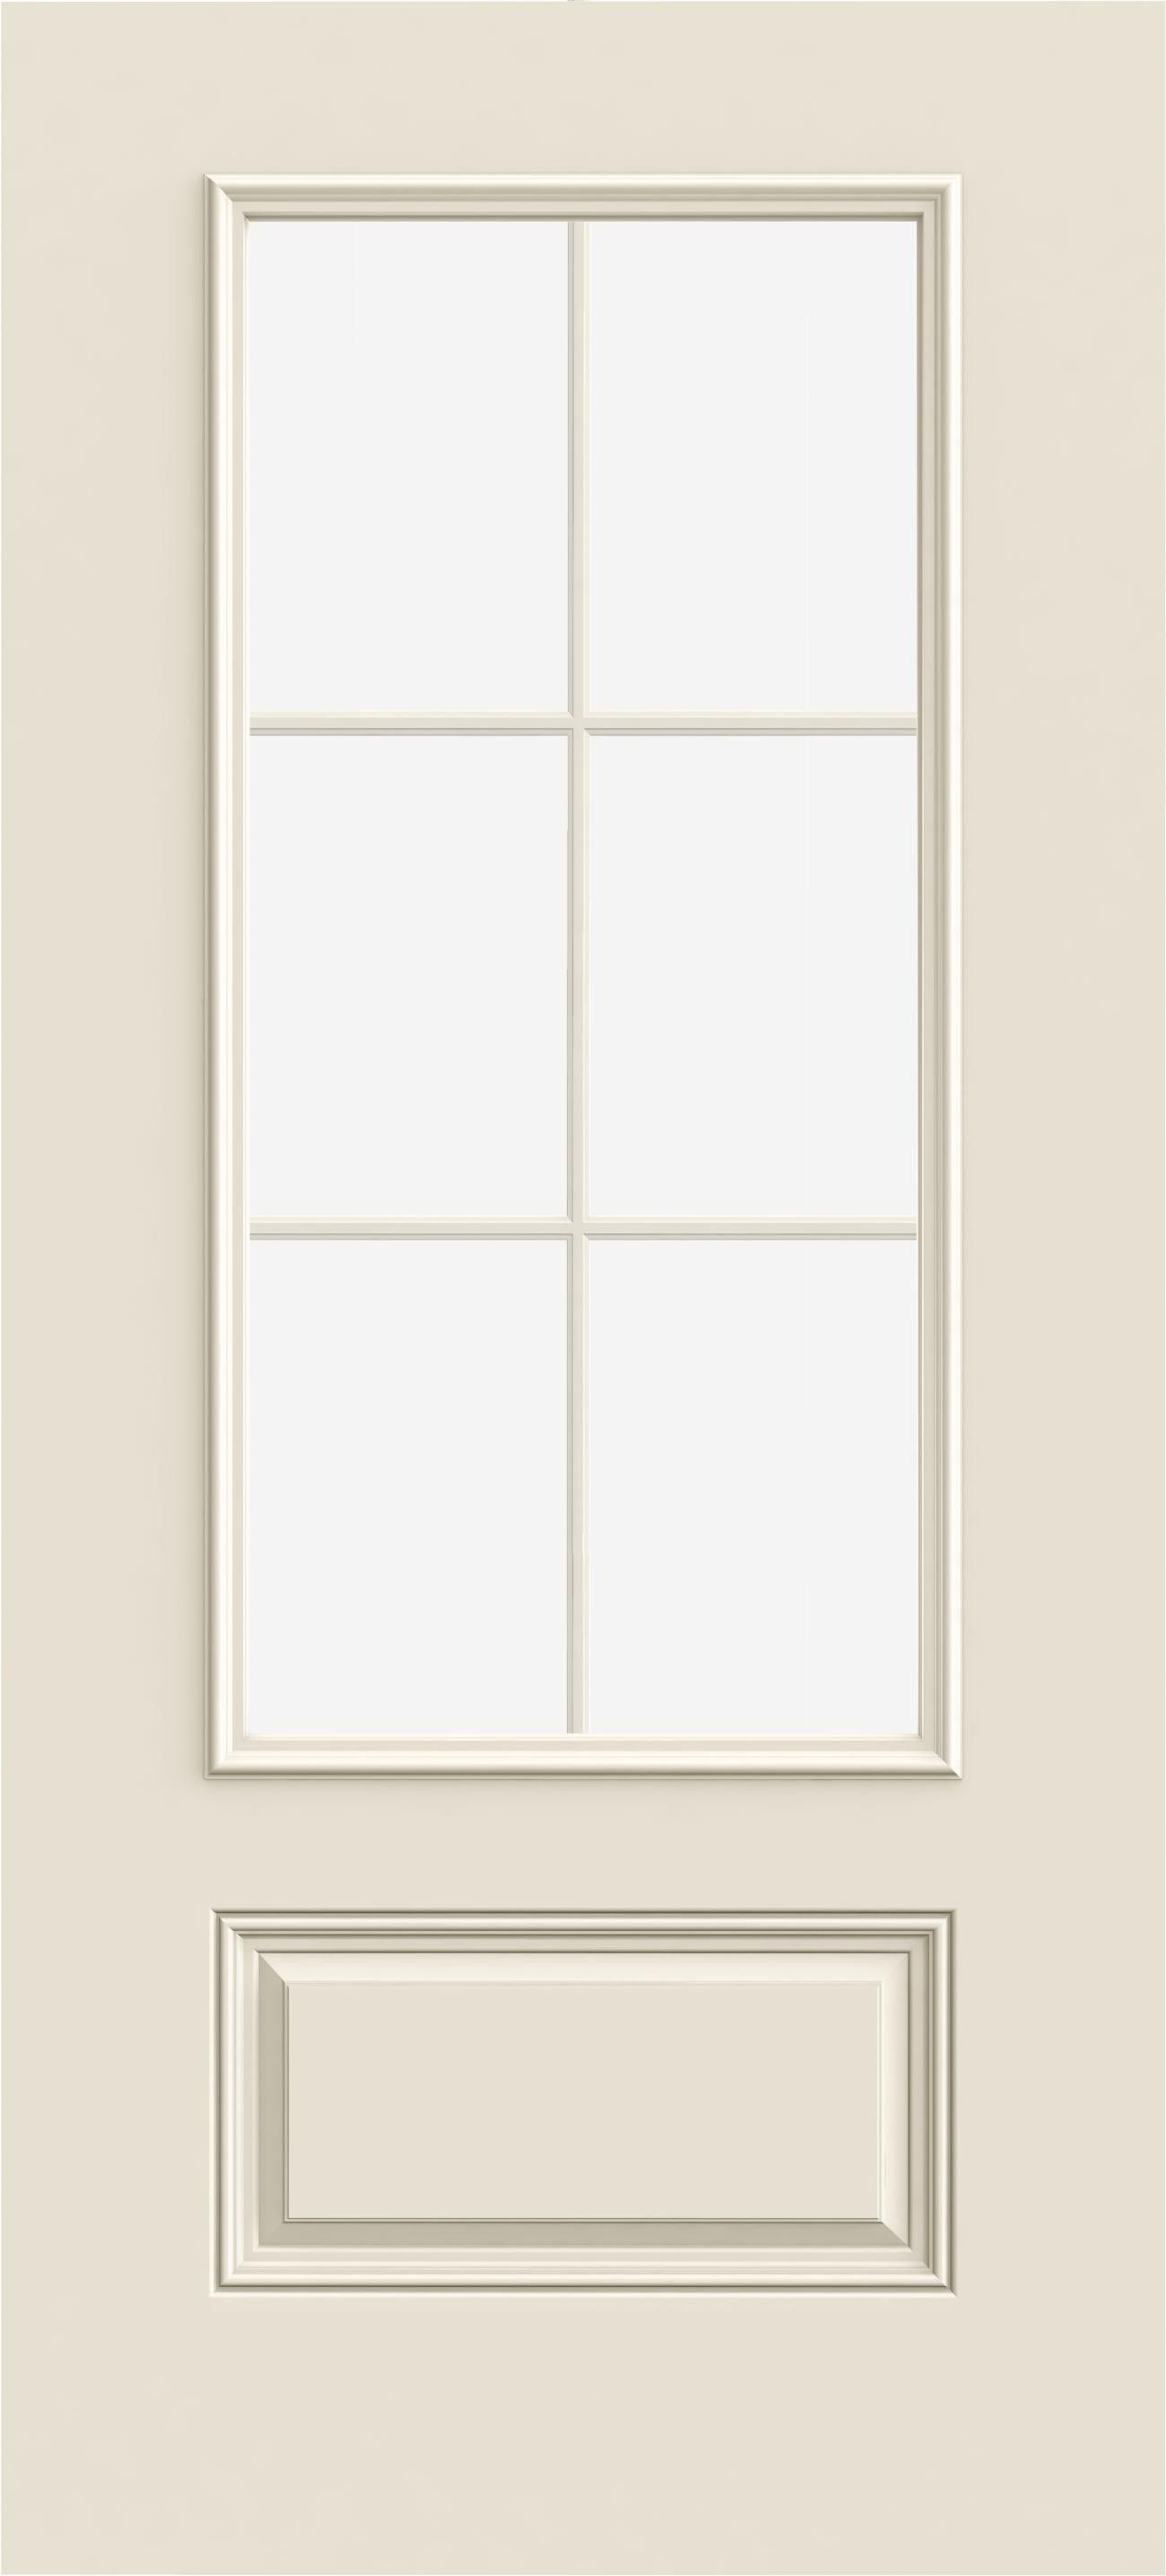 3068 3 4 View 6 Light 1 Panel Paint Grade Exterior Doors Fiberglass Exterior Doors Energy Efficient Door